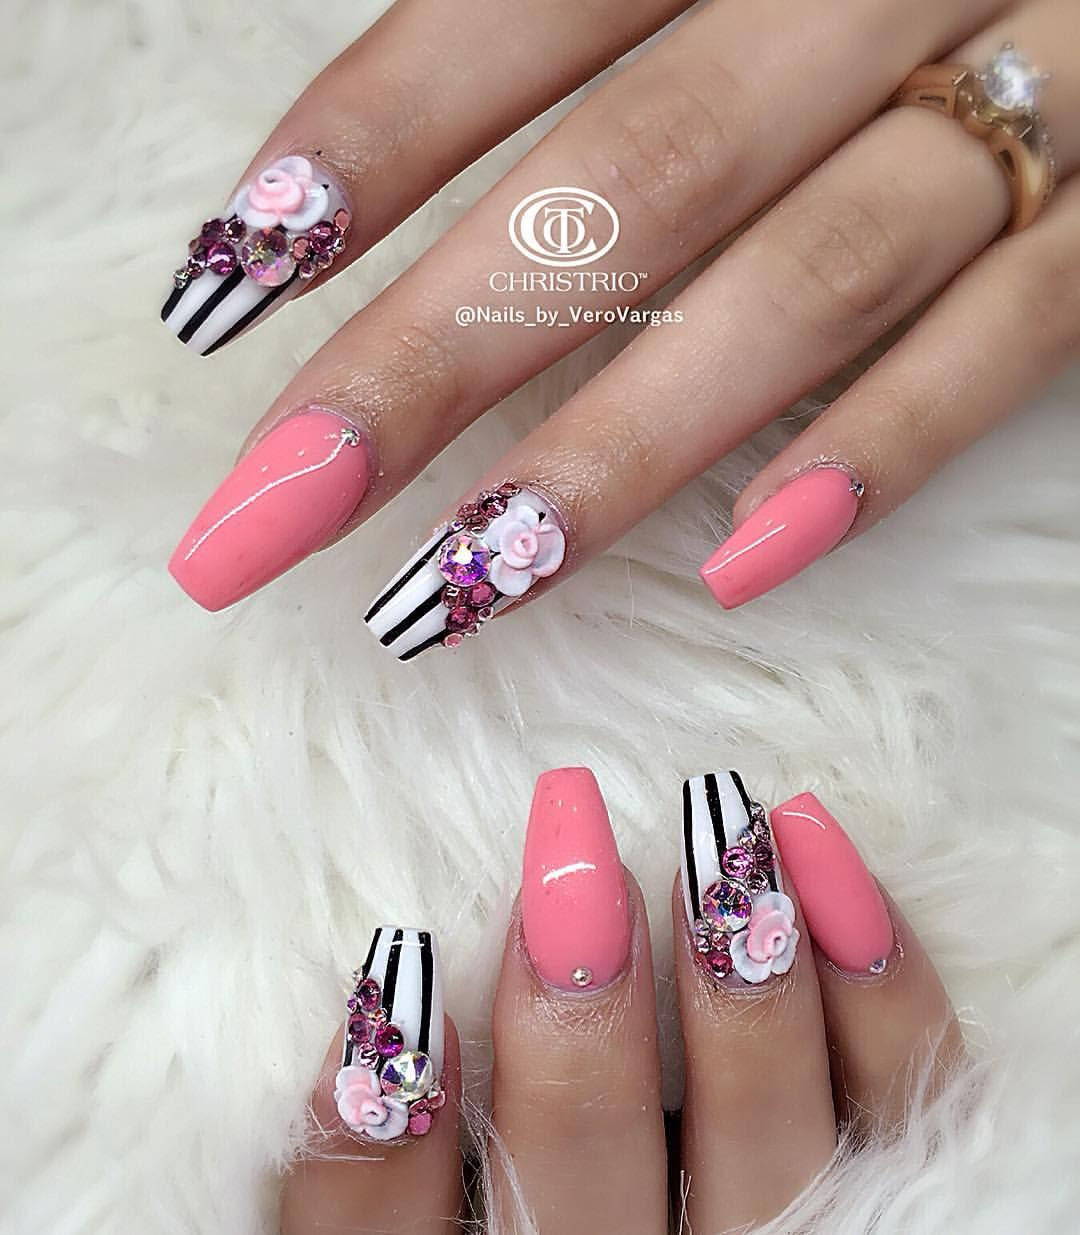 Pin by 👑Queen Neisha👑 on Nailed by the best | Pinterest | 3d, Nail ...